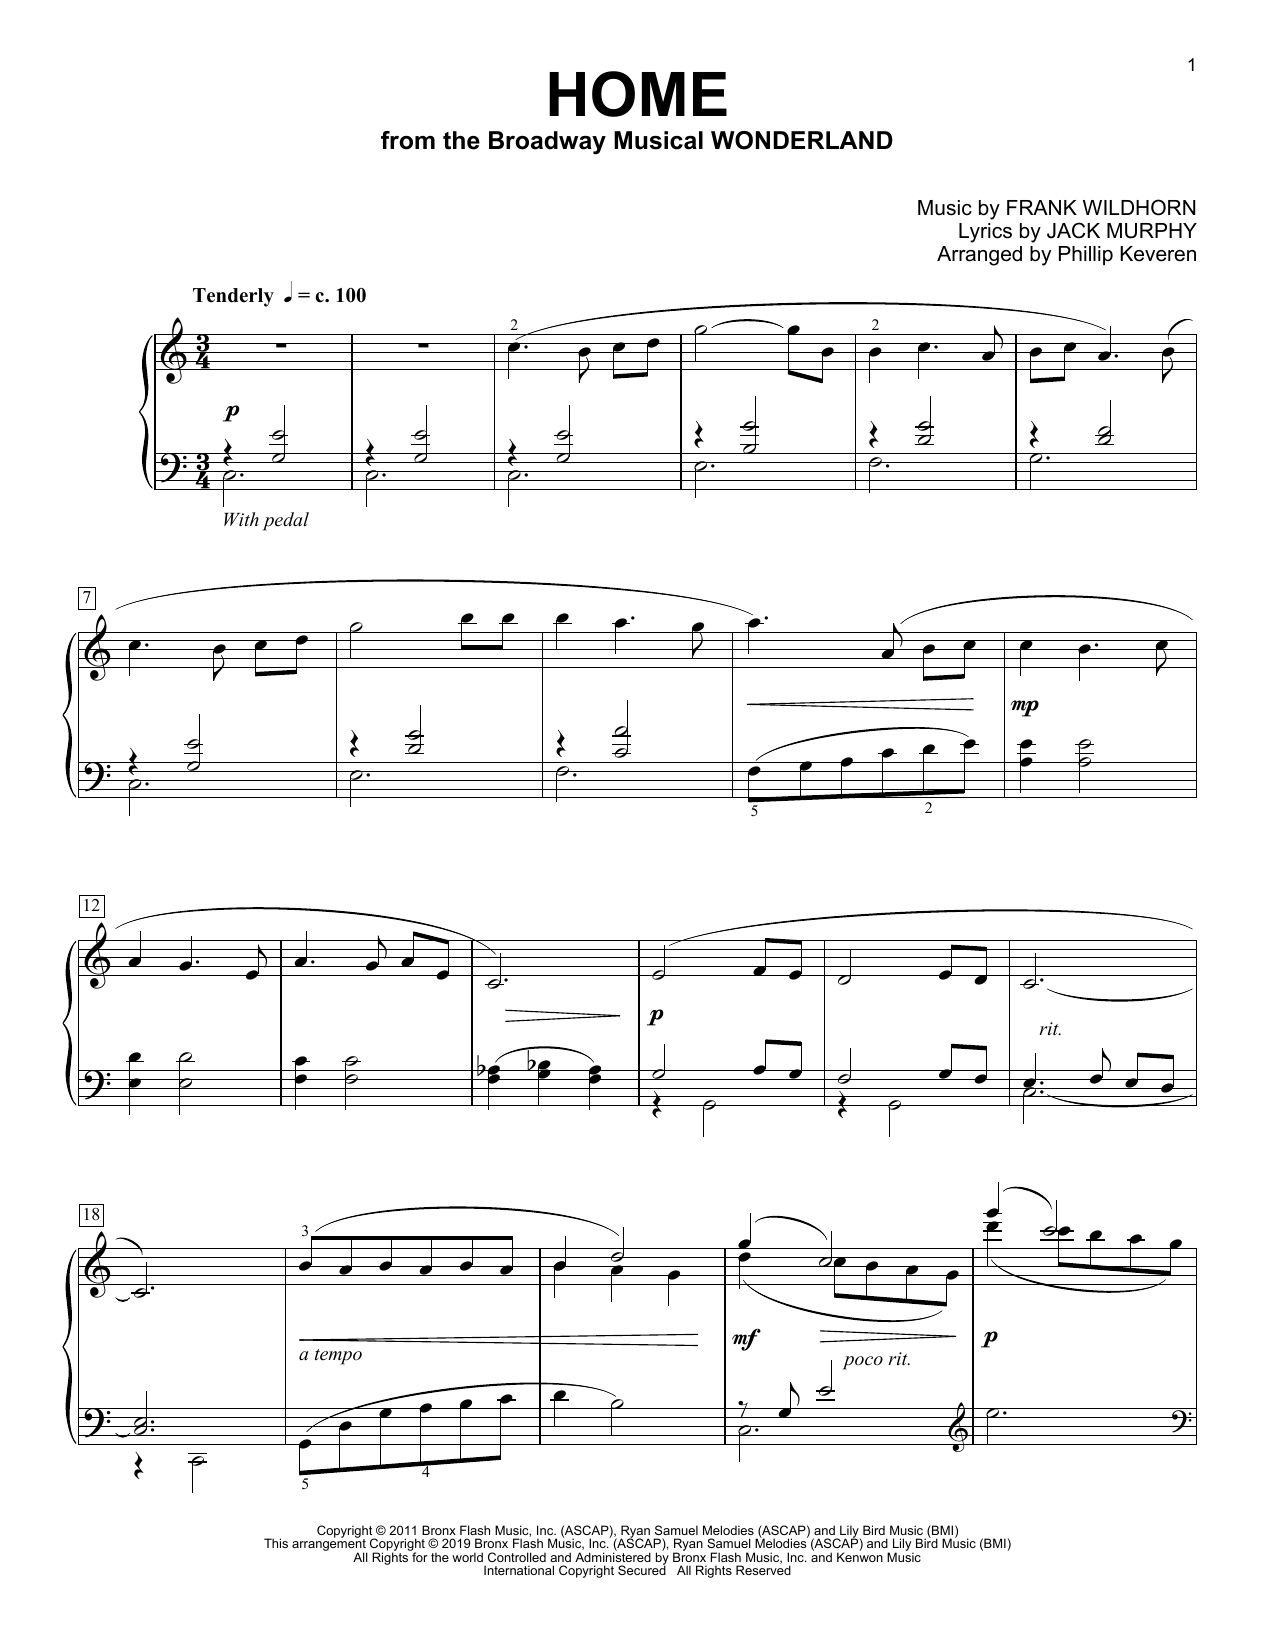 Home [Classical version] (from Wonderland) (arr. Phillip Keveren) (Piano Solo)